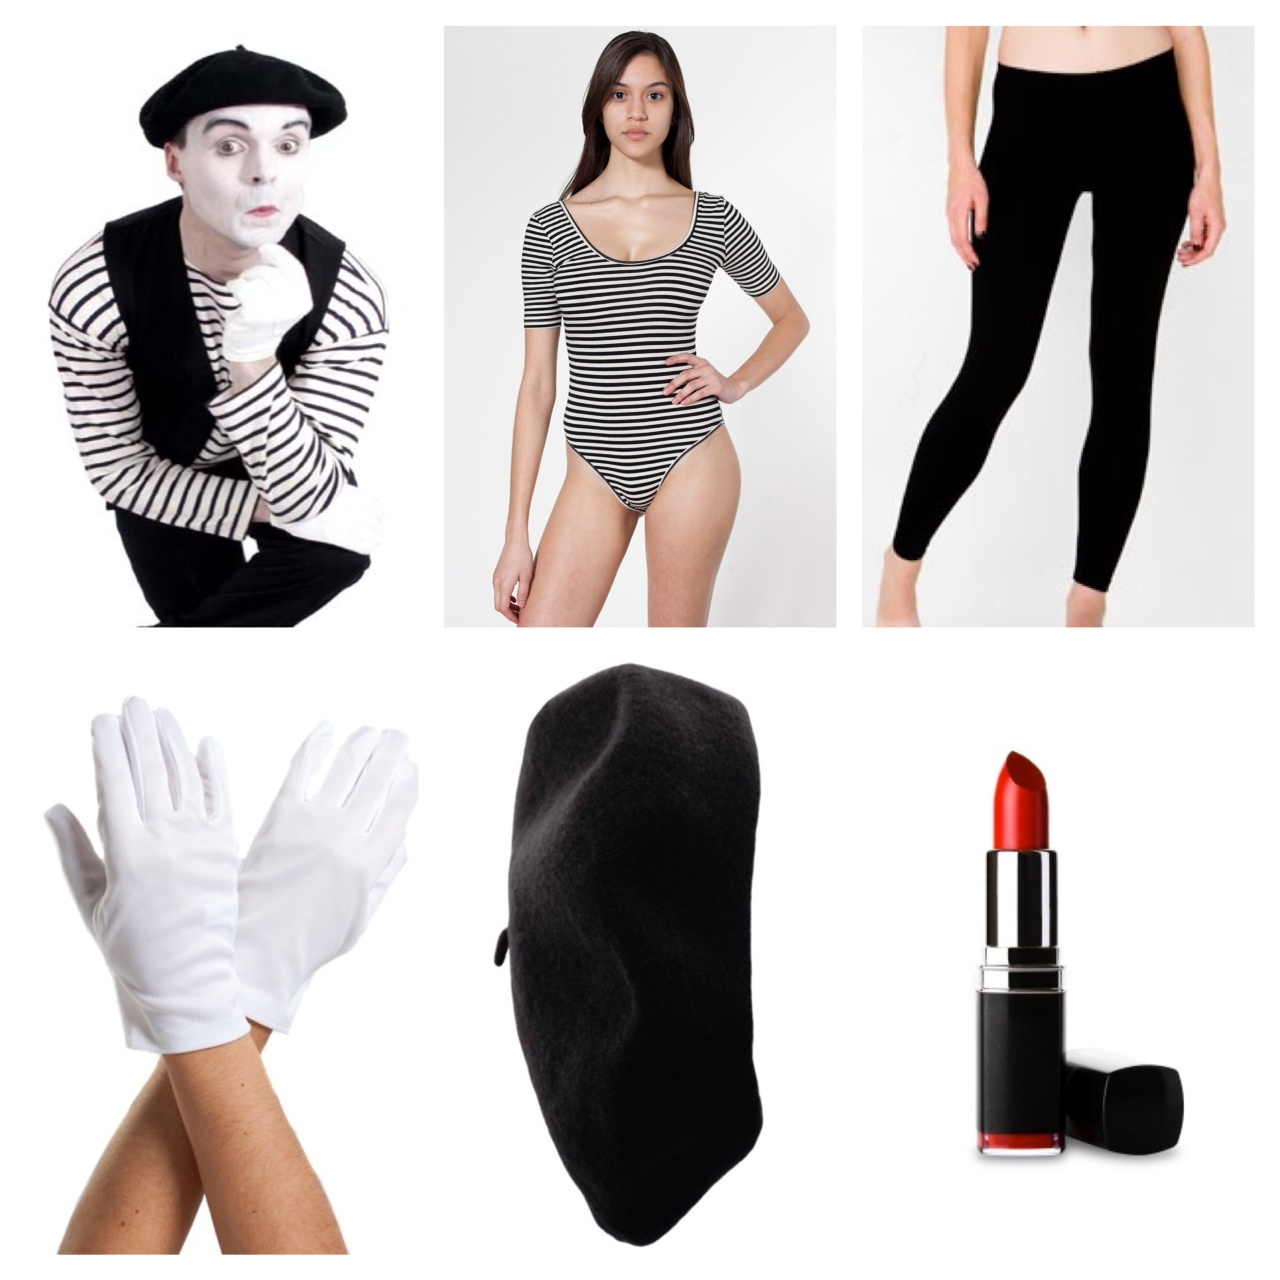 mime costume  sc 1 st  Mint Sprinkles & 8 Last Minute Halloween Costume Ideas | Mint Sprinkles